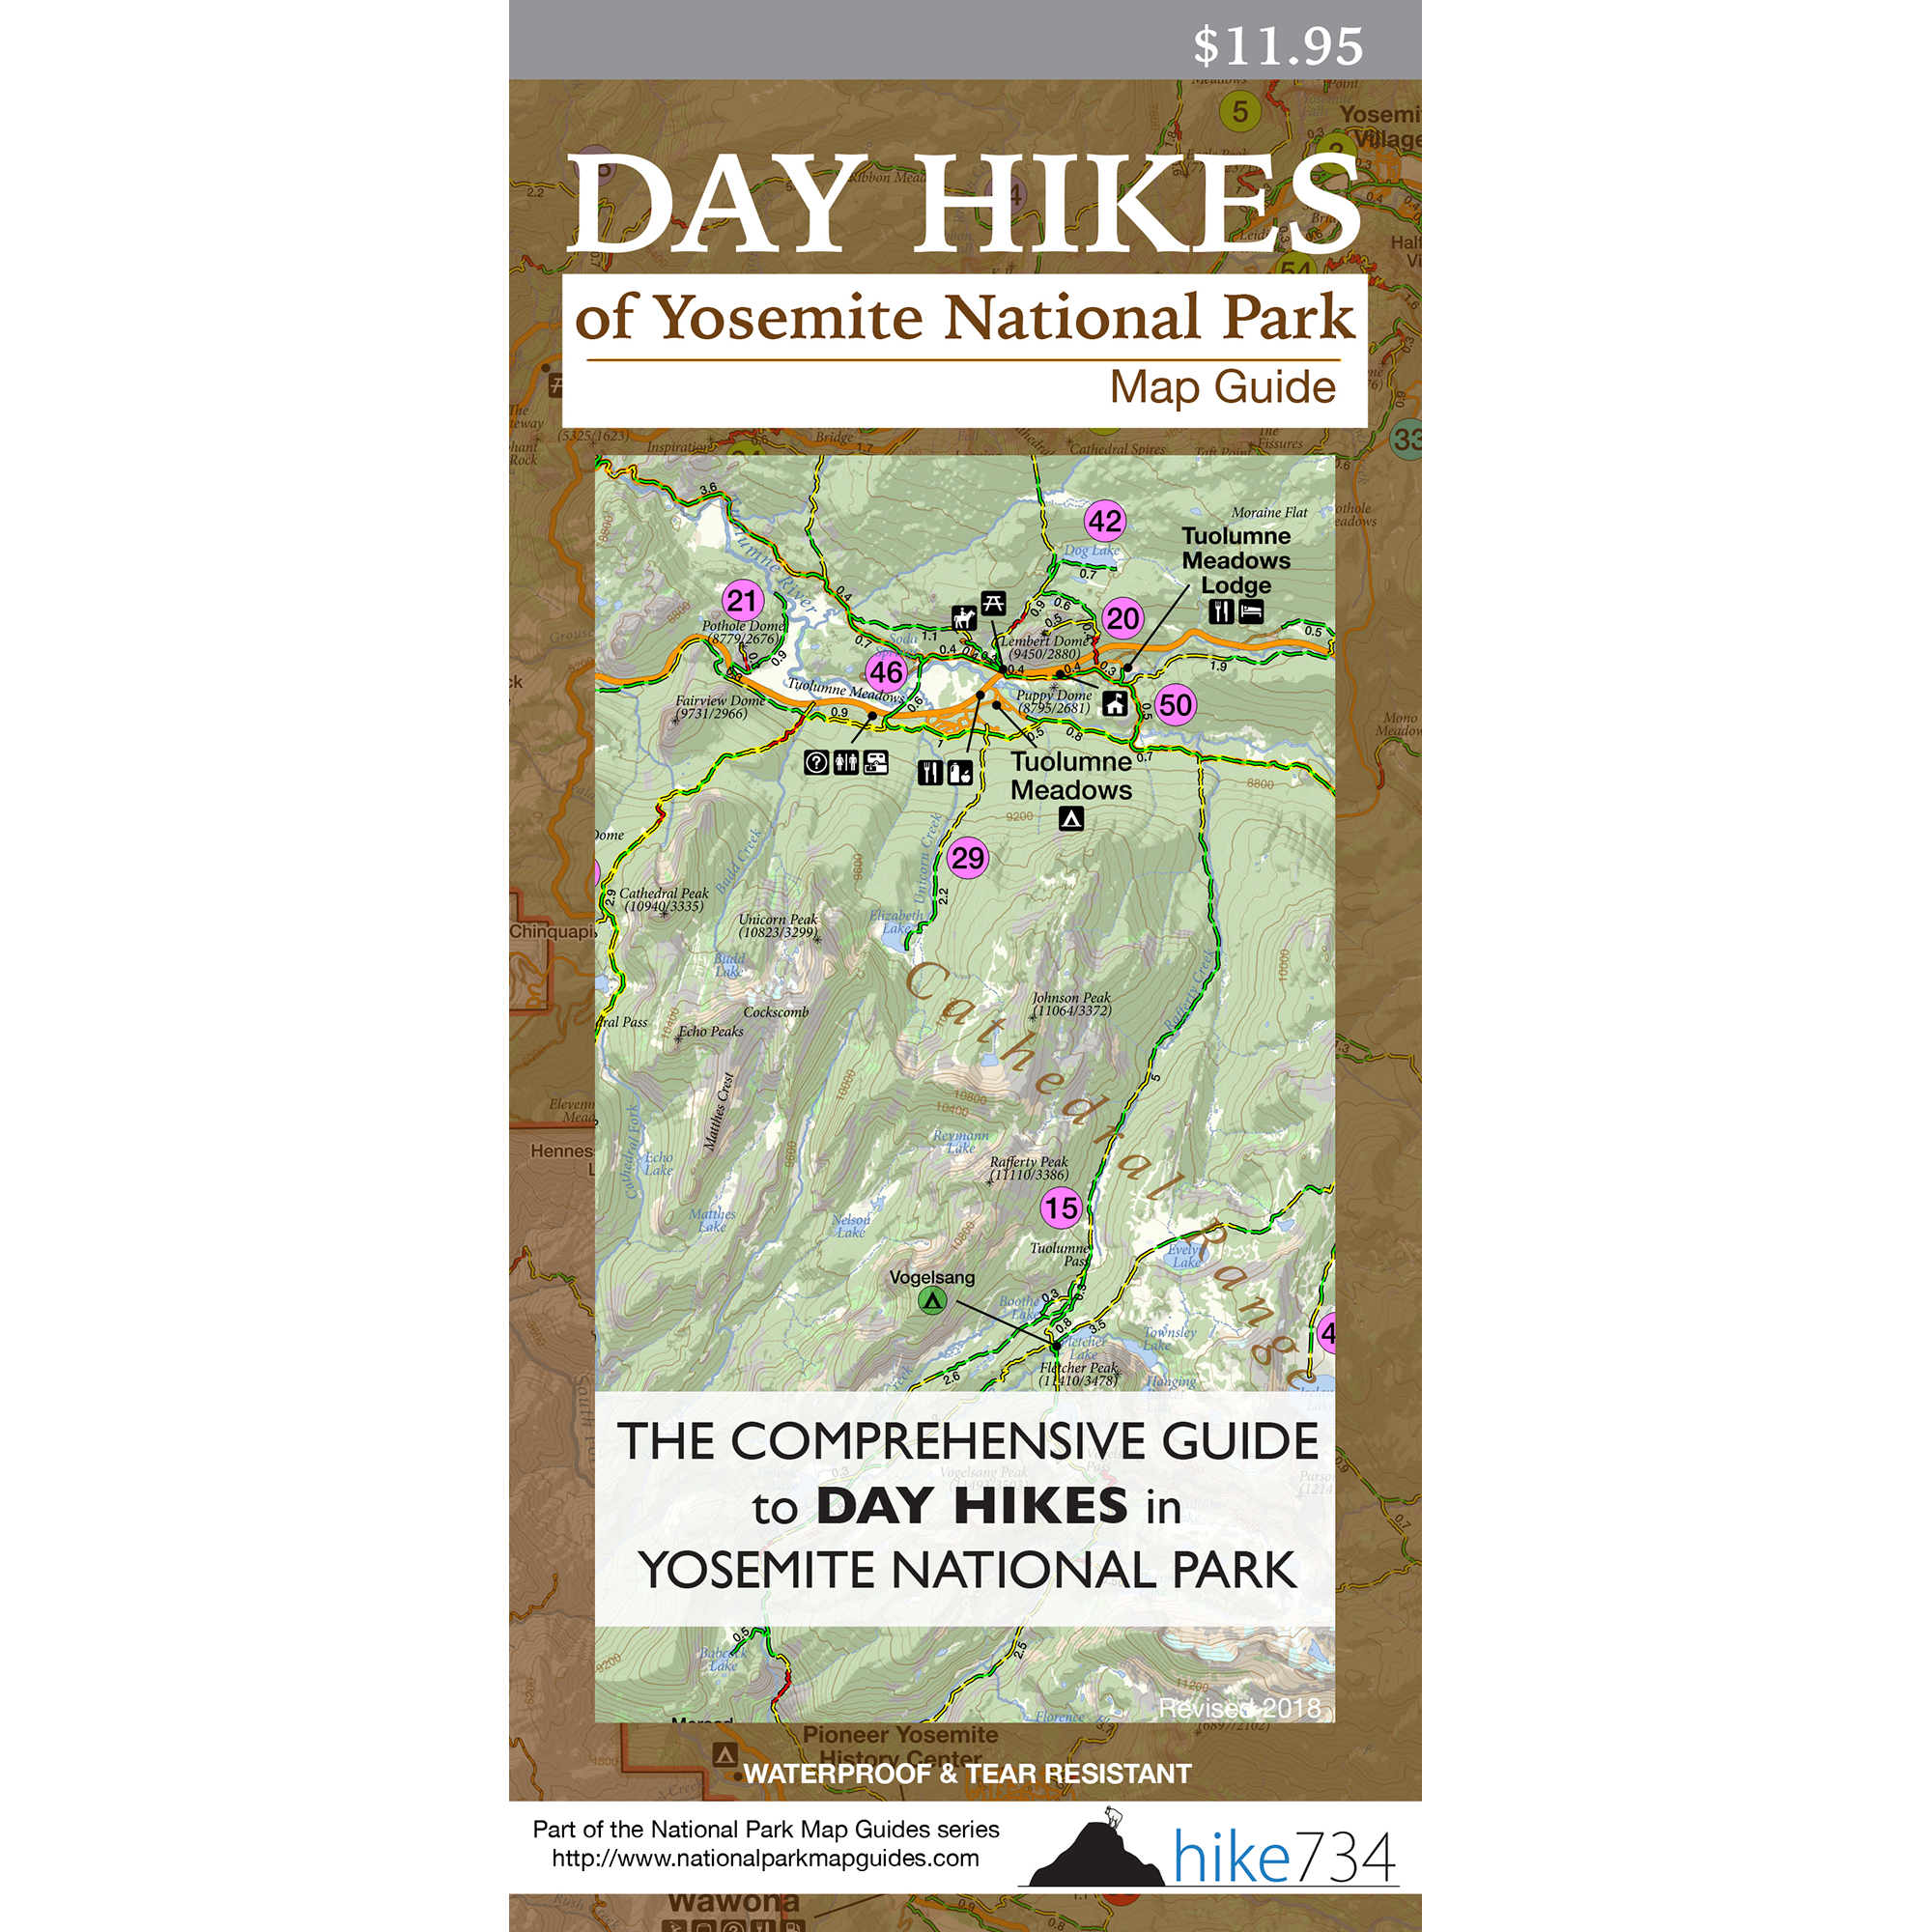 Day Hikes of Yosemite National Park Map Guide on gold rush country map, yosemite meadows, mariposa grove map, yosemite screenshots, death valley map, yosemite weather, las vegas map, yosemite waterfalls, yosemite wildlife, yosemite fire, california map, yosemite wallpaper, yosemite animals, yosemite lost brother, lake tahoe map, yosemite valley, yosemite camping, yellowstone map, grand canyon map,